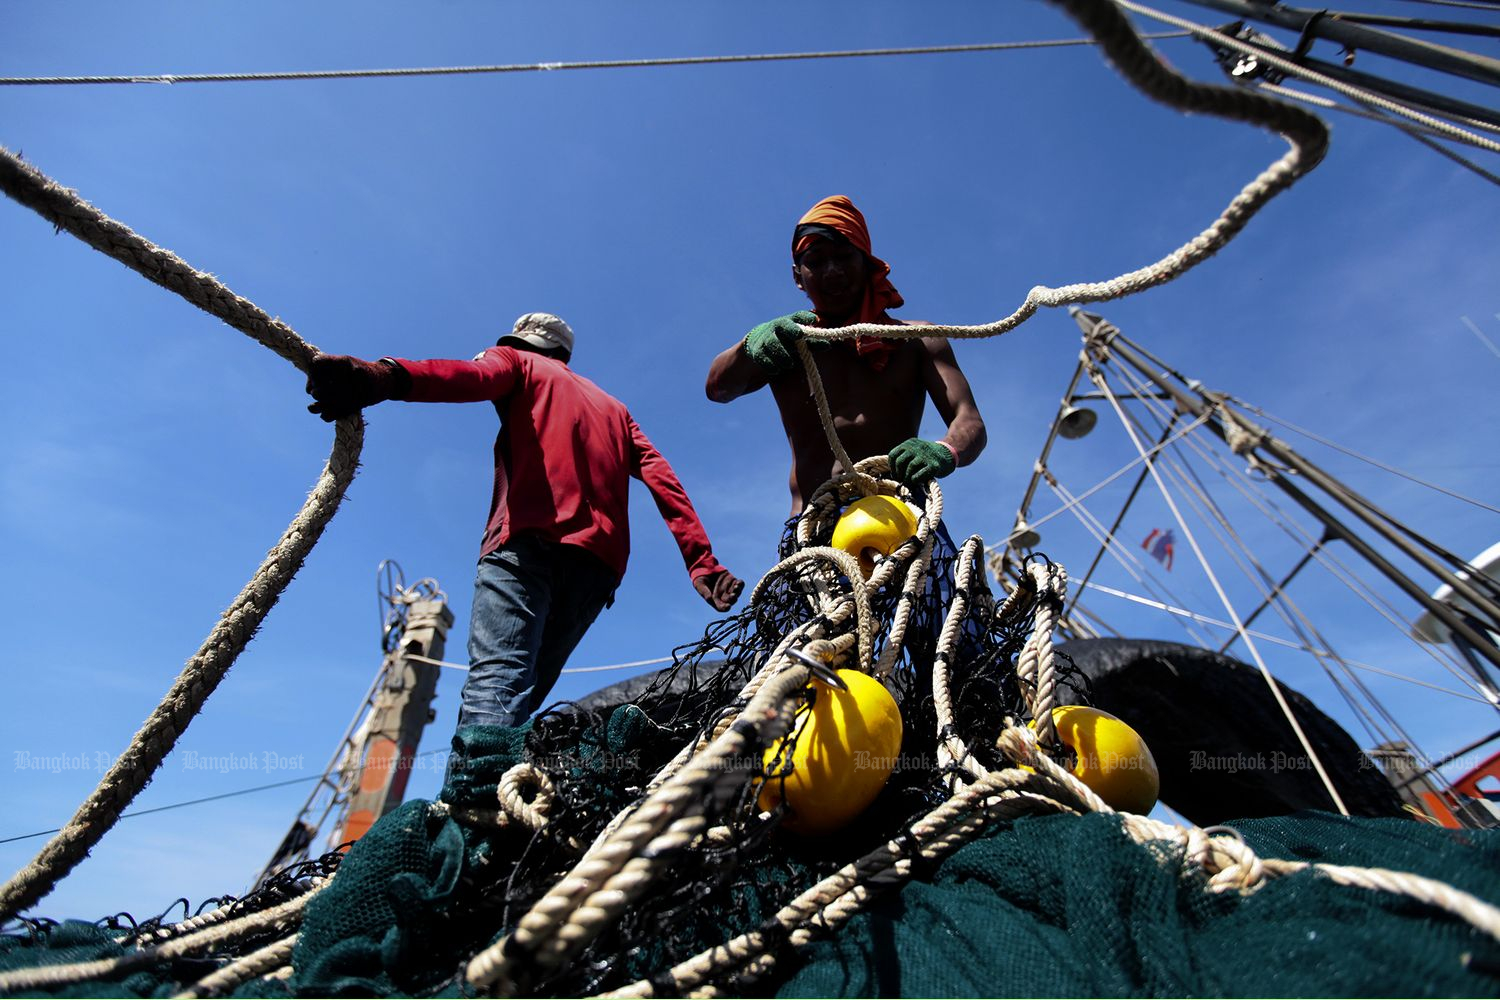 Migrant labourers work on a fishing boat docked at a pier in Phangnga province in November 2014. (Bangkok Post file photo)